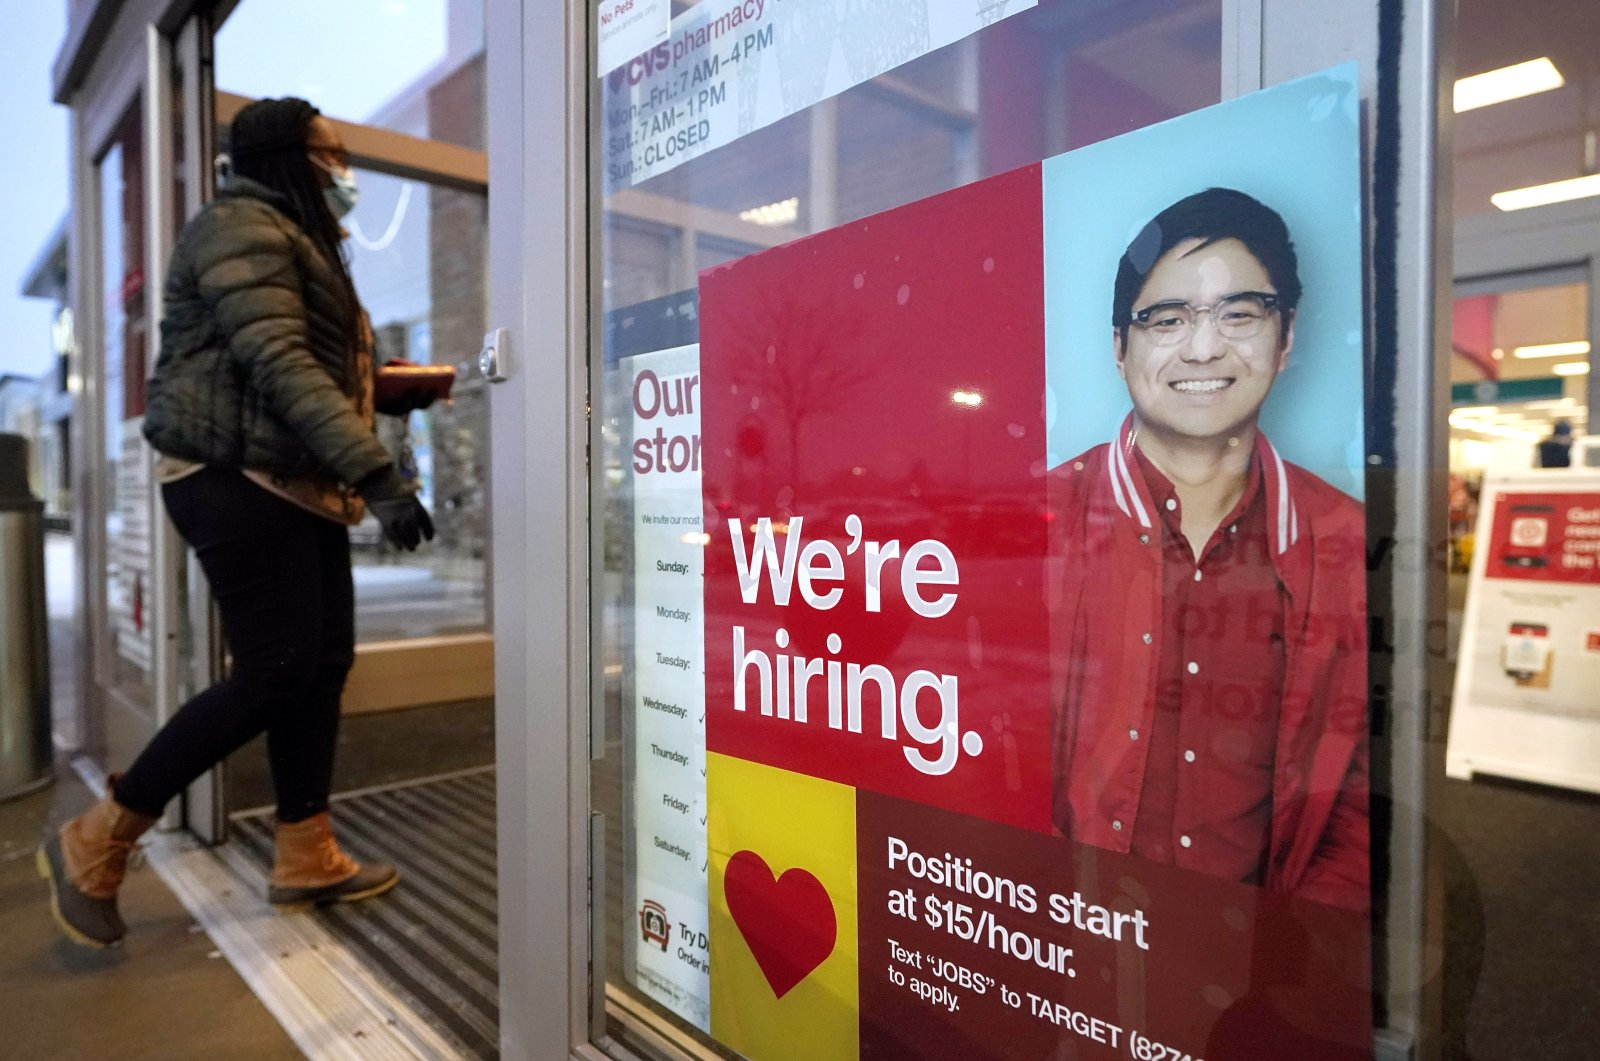 A passer-by walks past an employment hiring sign while entering a Target store location in Westwood, Mass., U.S., Feb. 9, 2021. (AP Photo)